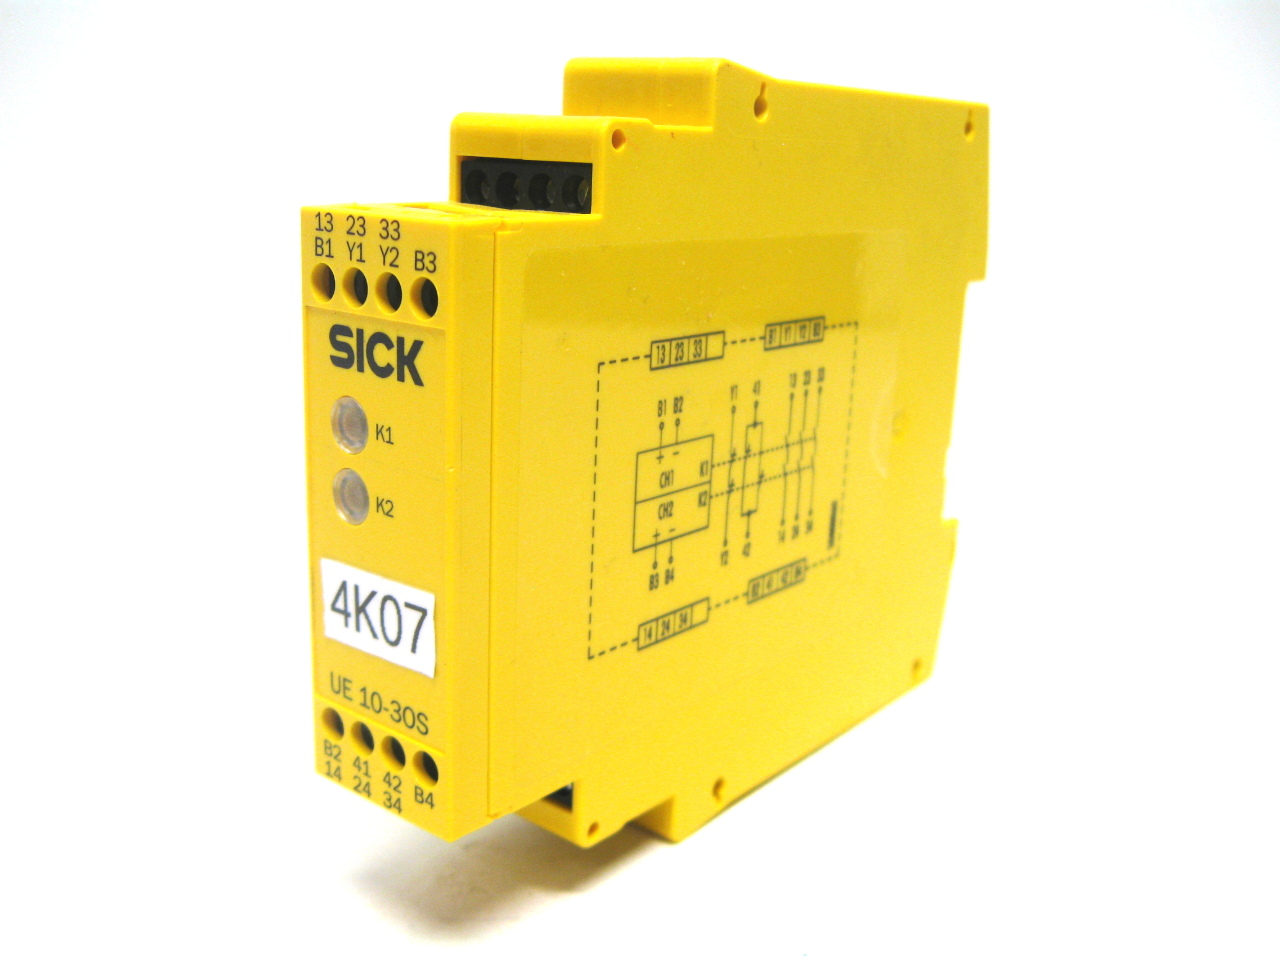 sick ue10 3os2d0 safety relay 24 vdc 6024917 ebay